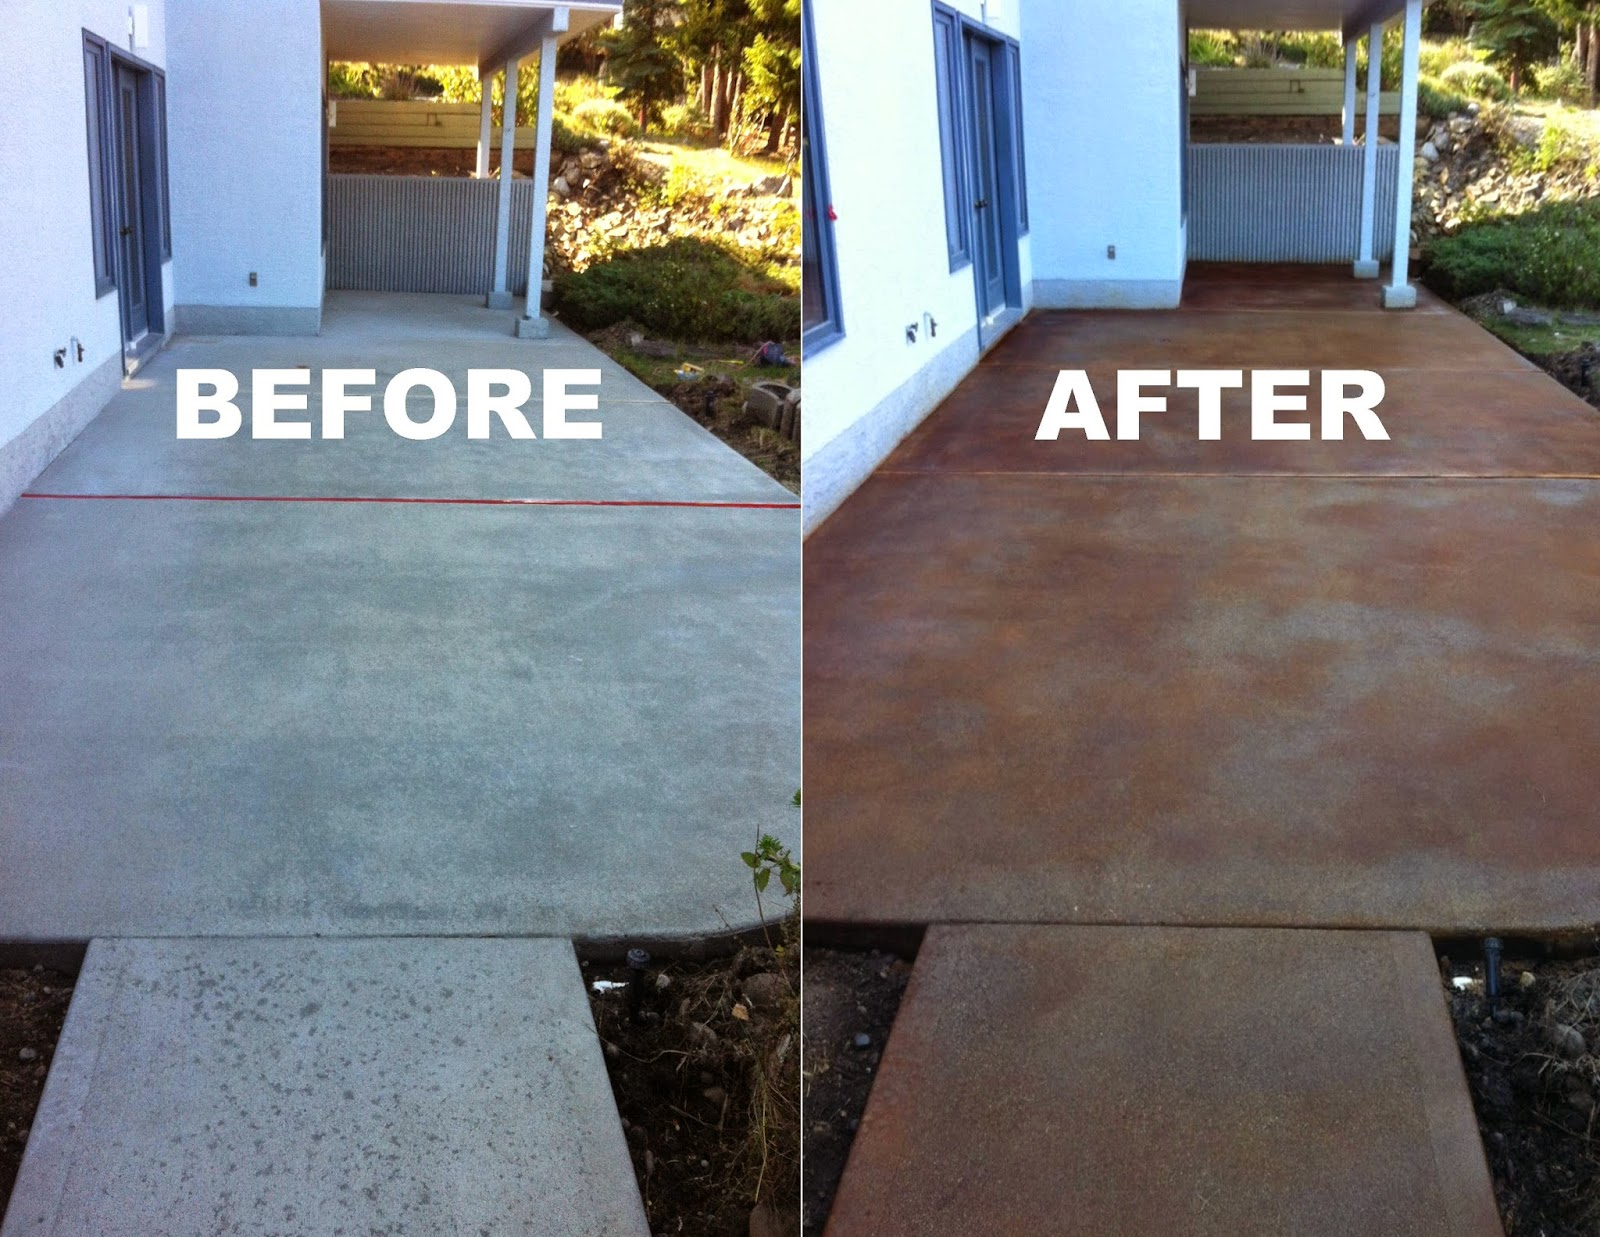 Mode concrete concrete maintenance repair acid staining for How to clean concrete floors before staining